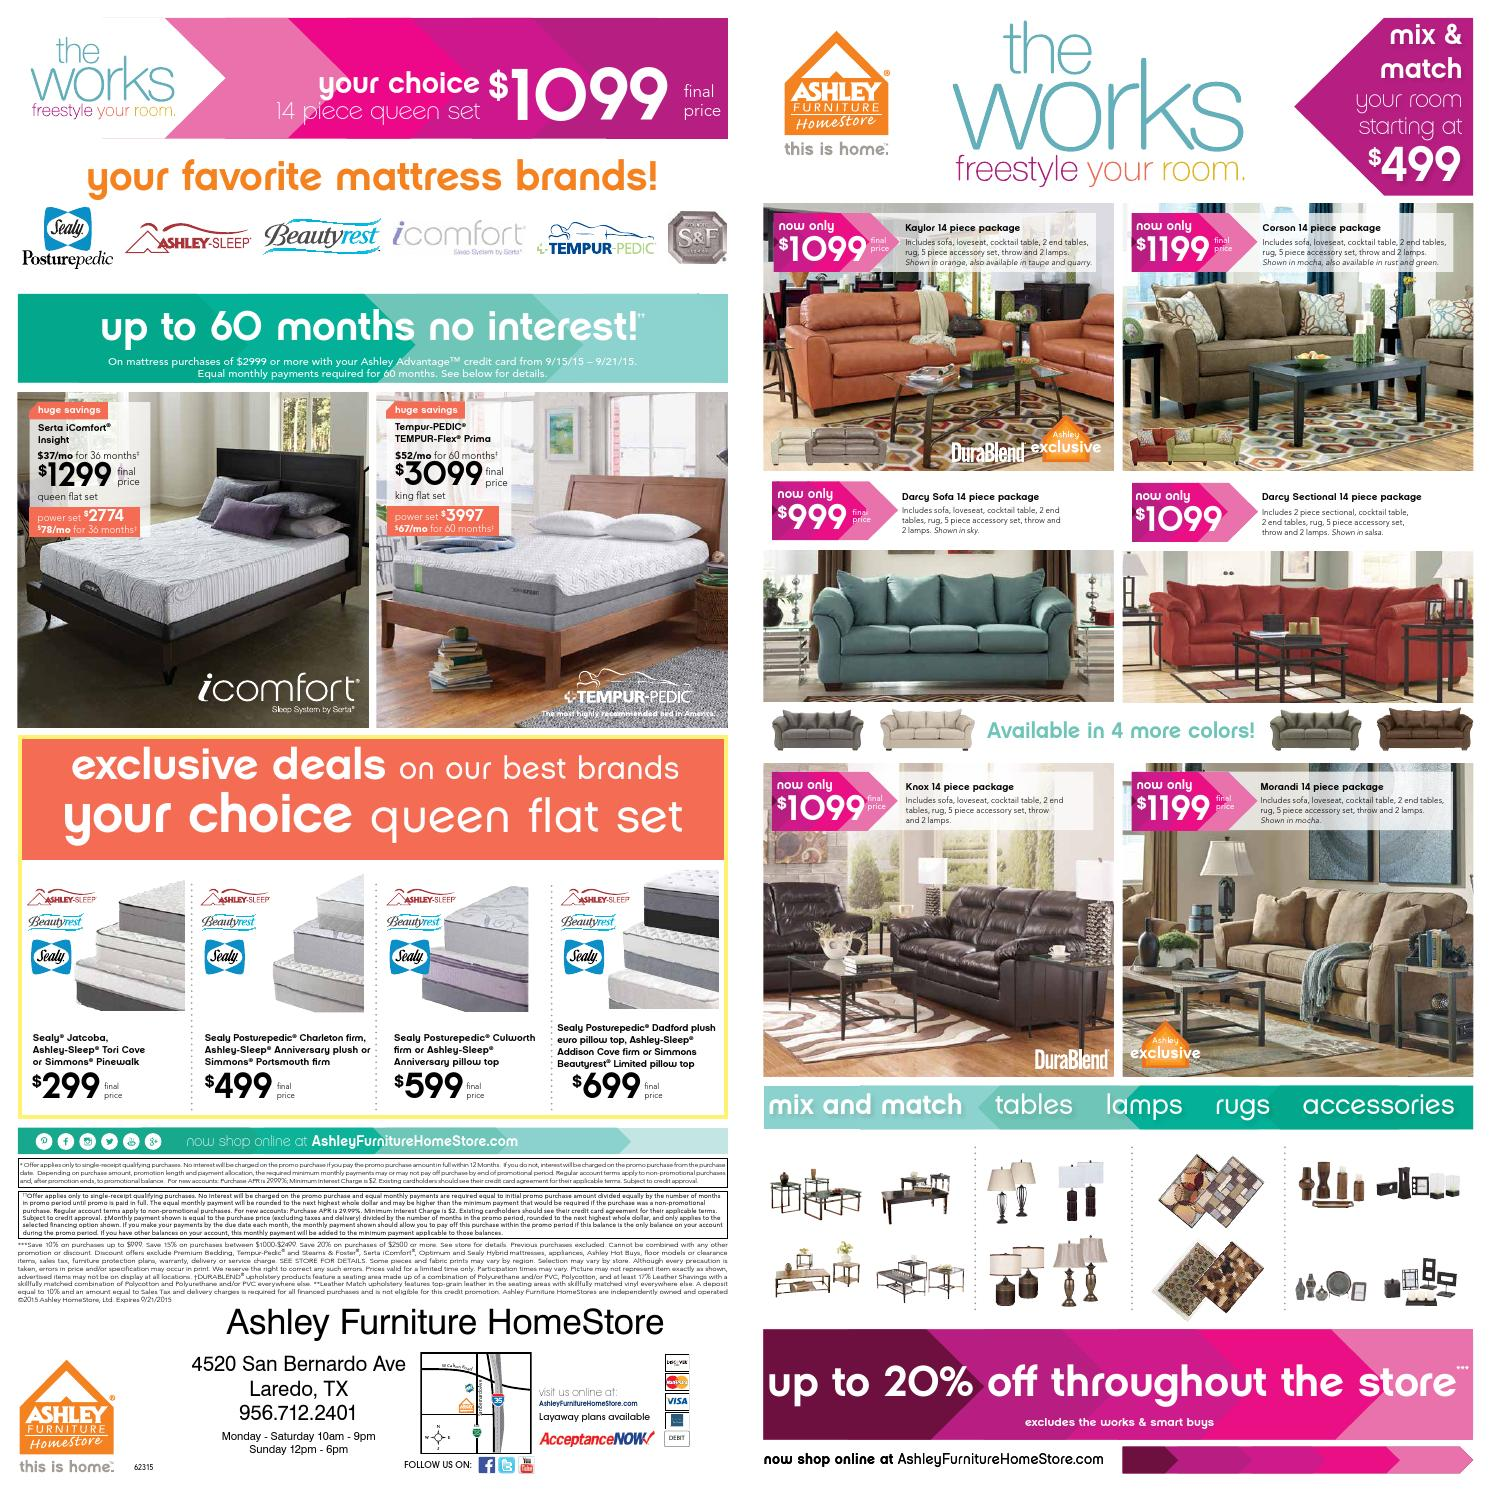 Ashley Furniture 14 Piece Package: The Works 14 Piece Room Package Event By Ashley Furniture